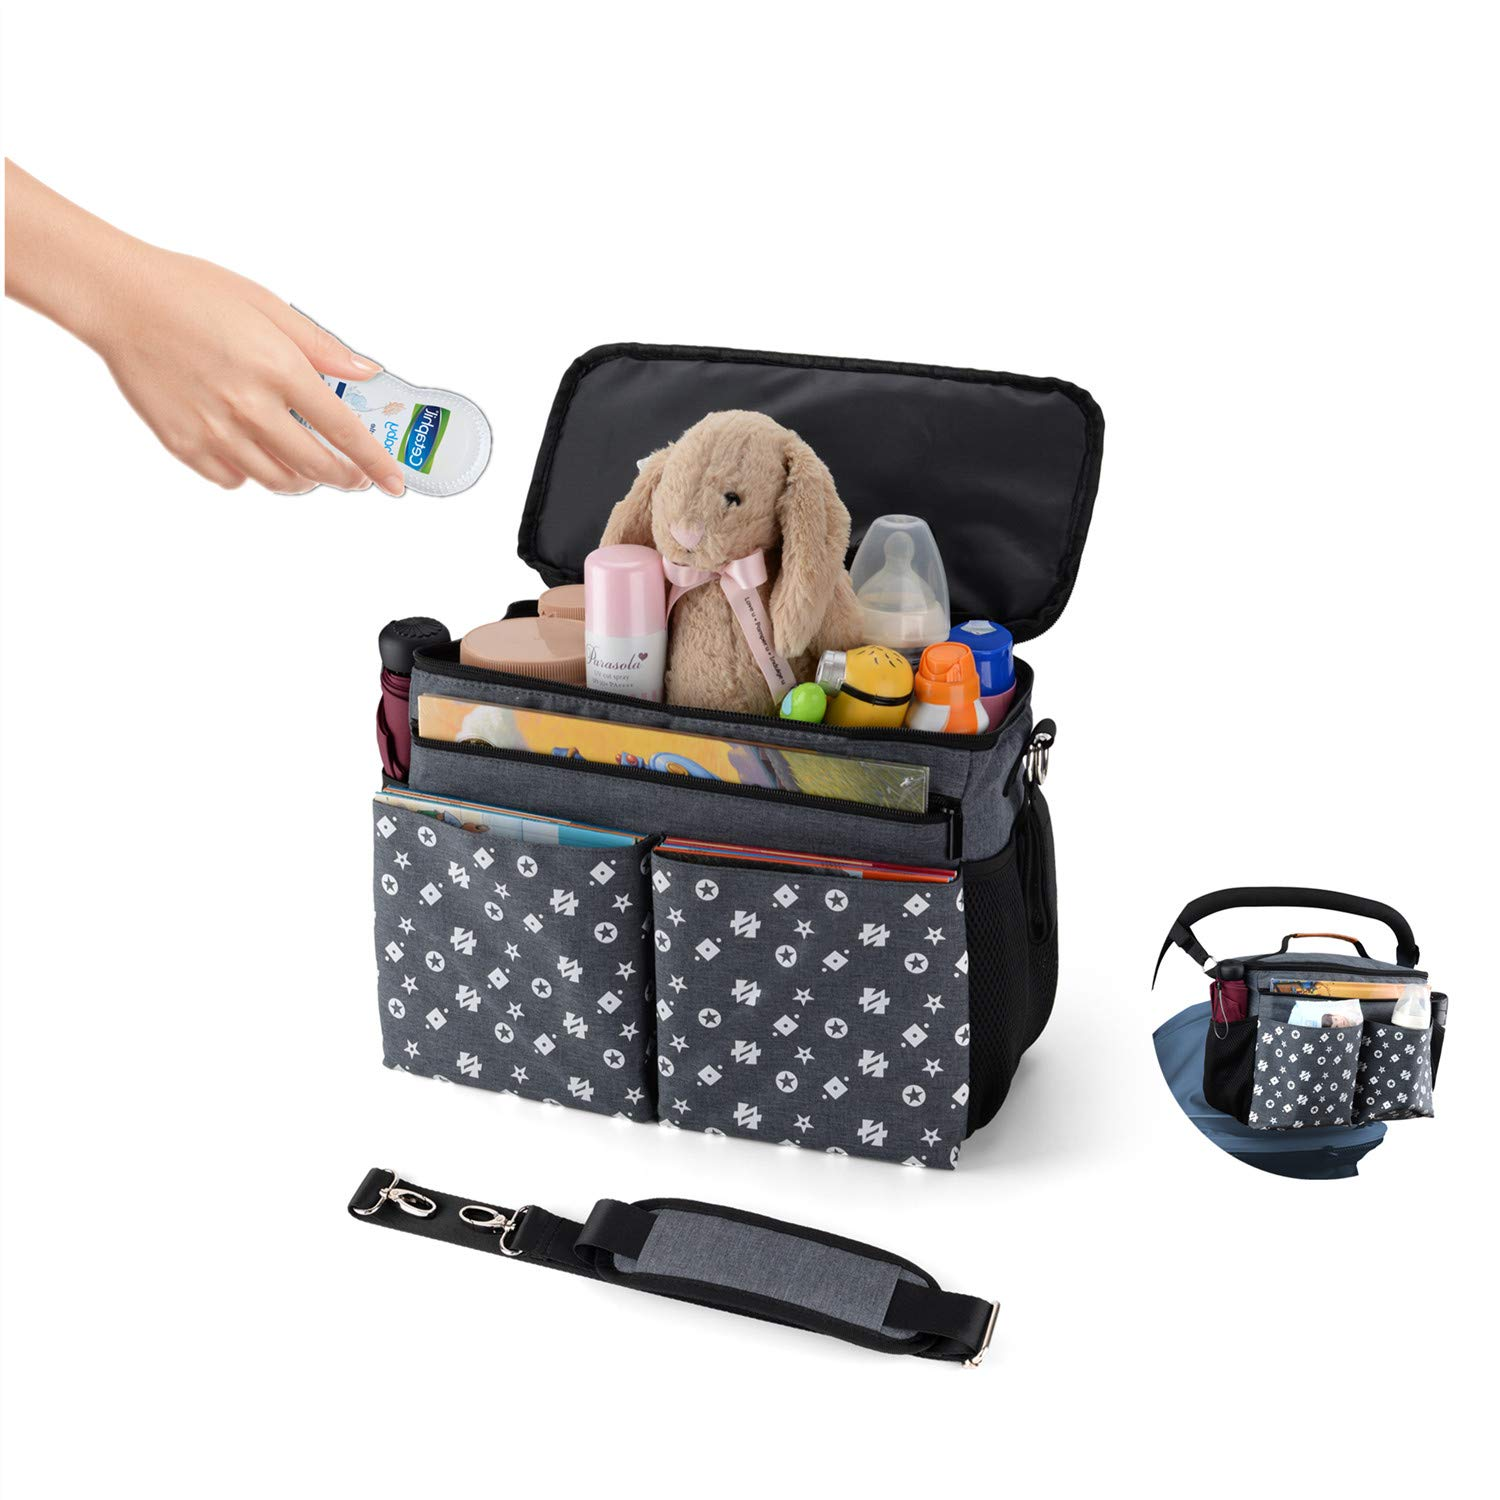 Large Baby Stroller Organizer Diaper Bag with Extra Storage, Easy Installation, Bottle Holders, Shoulder Strap for Stroller Like Uppababy, Baby Jogger, Britax, Bugaboo, BOB, Umbrella & Pet Stroller